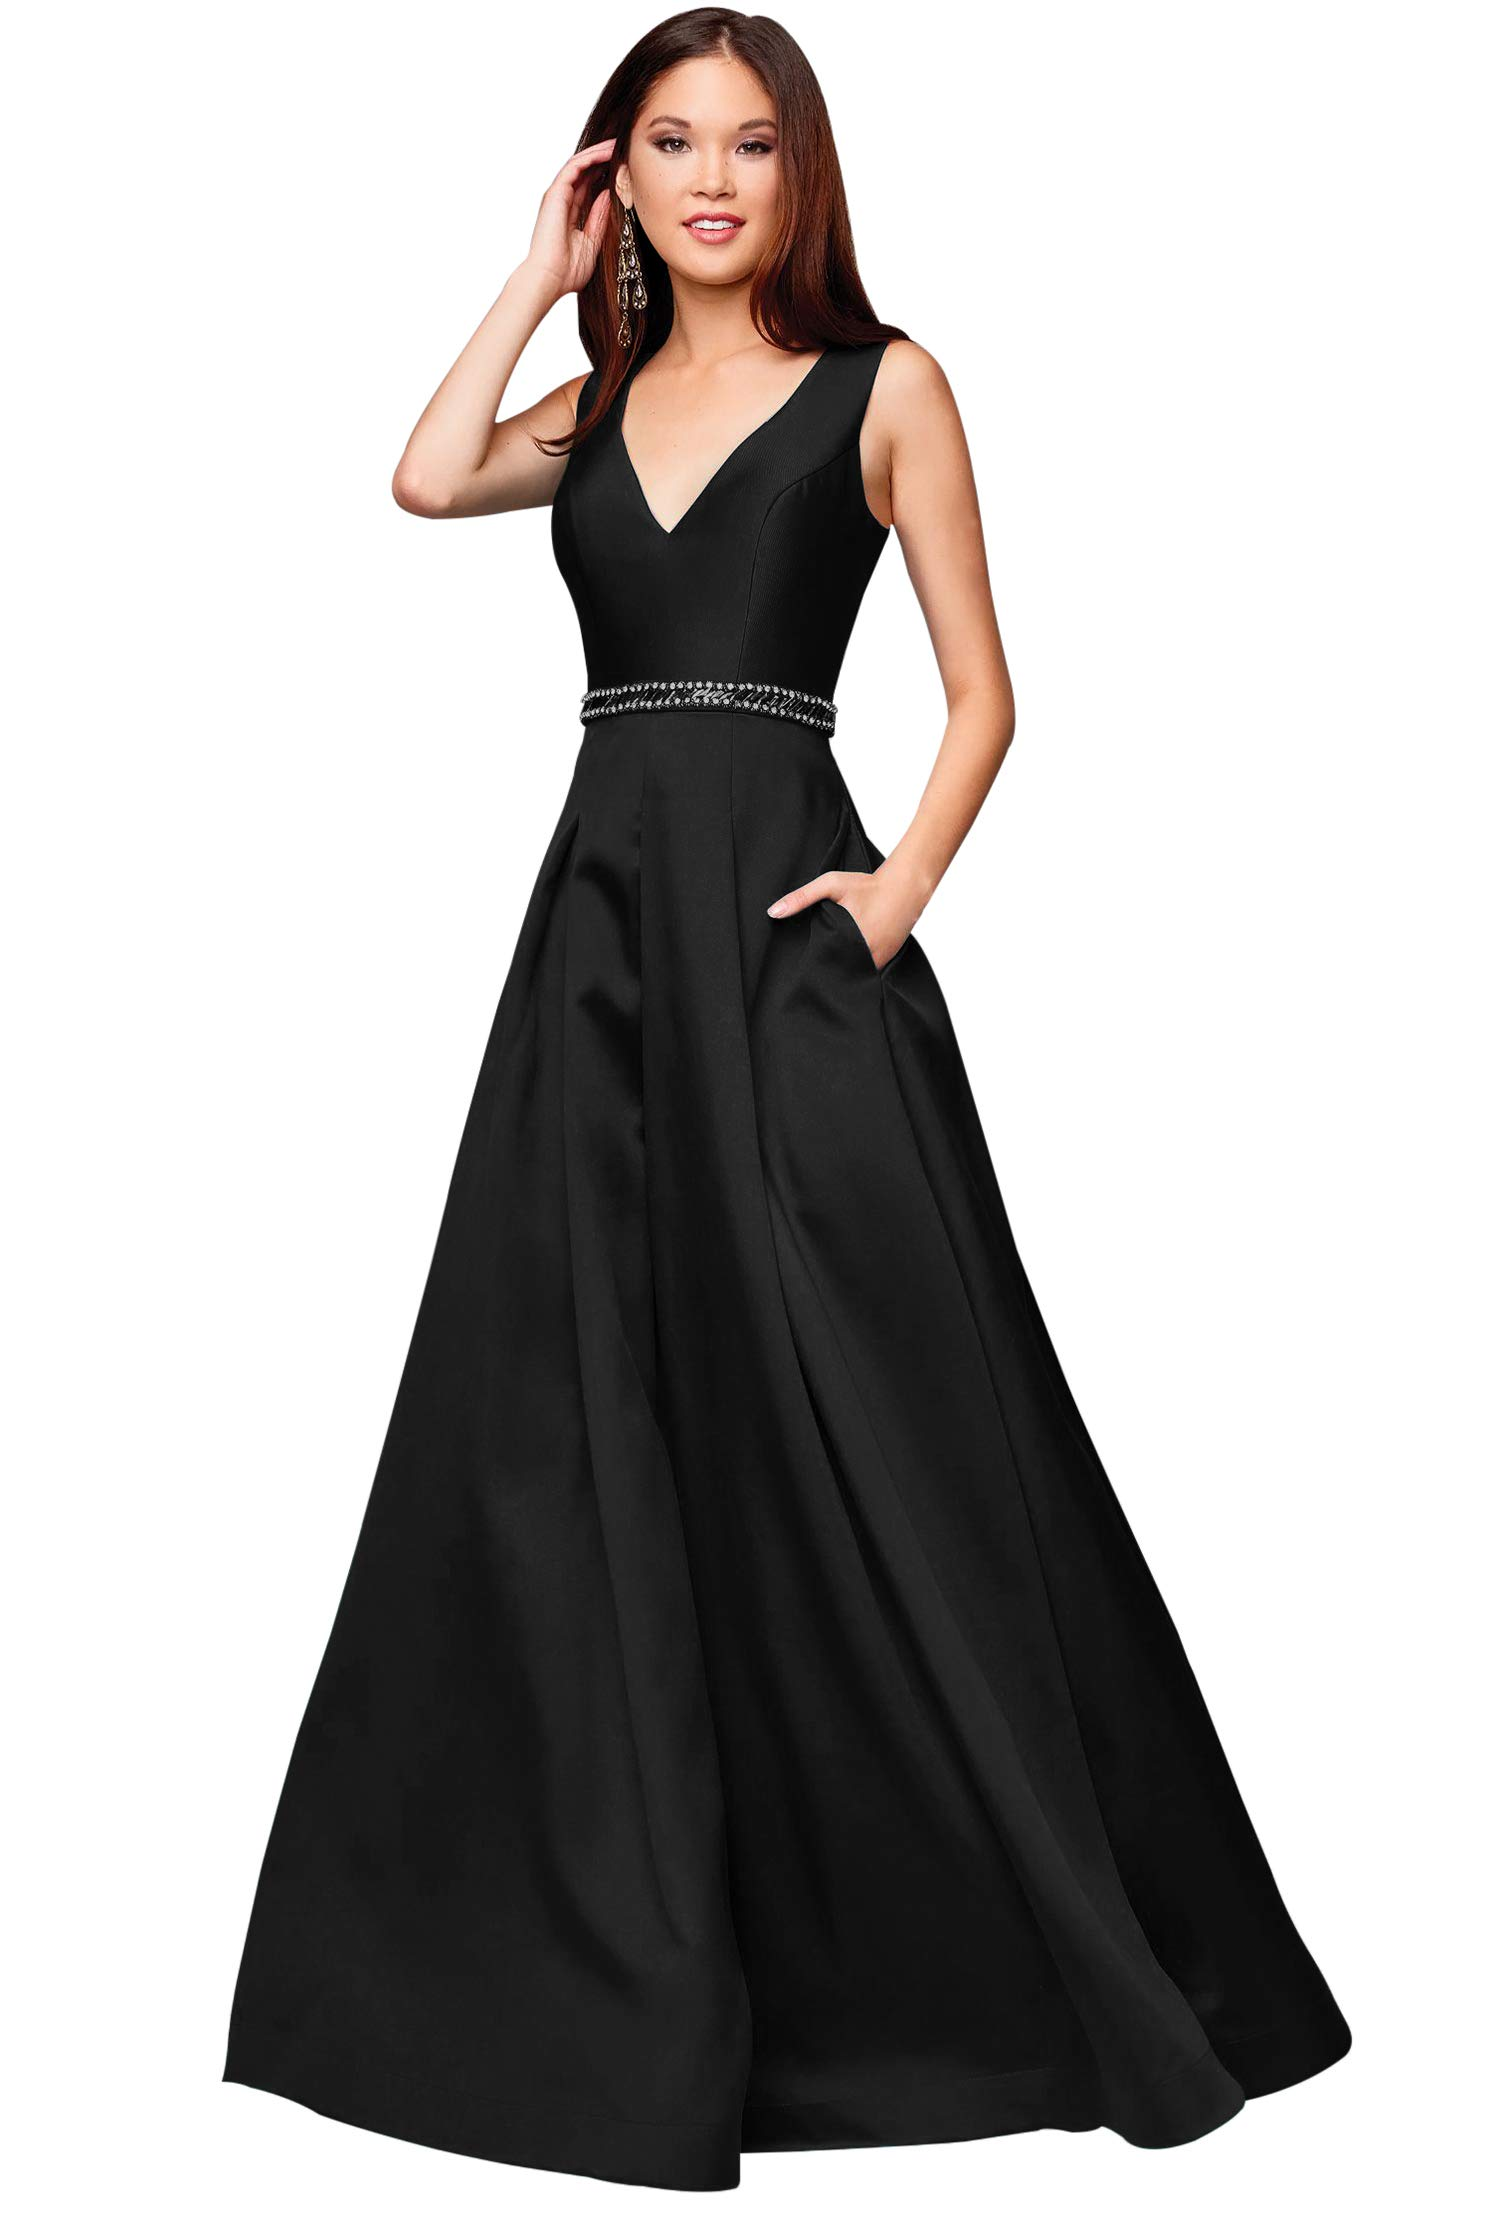 a681e7132d58 Zhongde Women's A-line V Neck Beaded Satin Prom Dress Long Evening Formal  Gown with Pockets Black Size 2